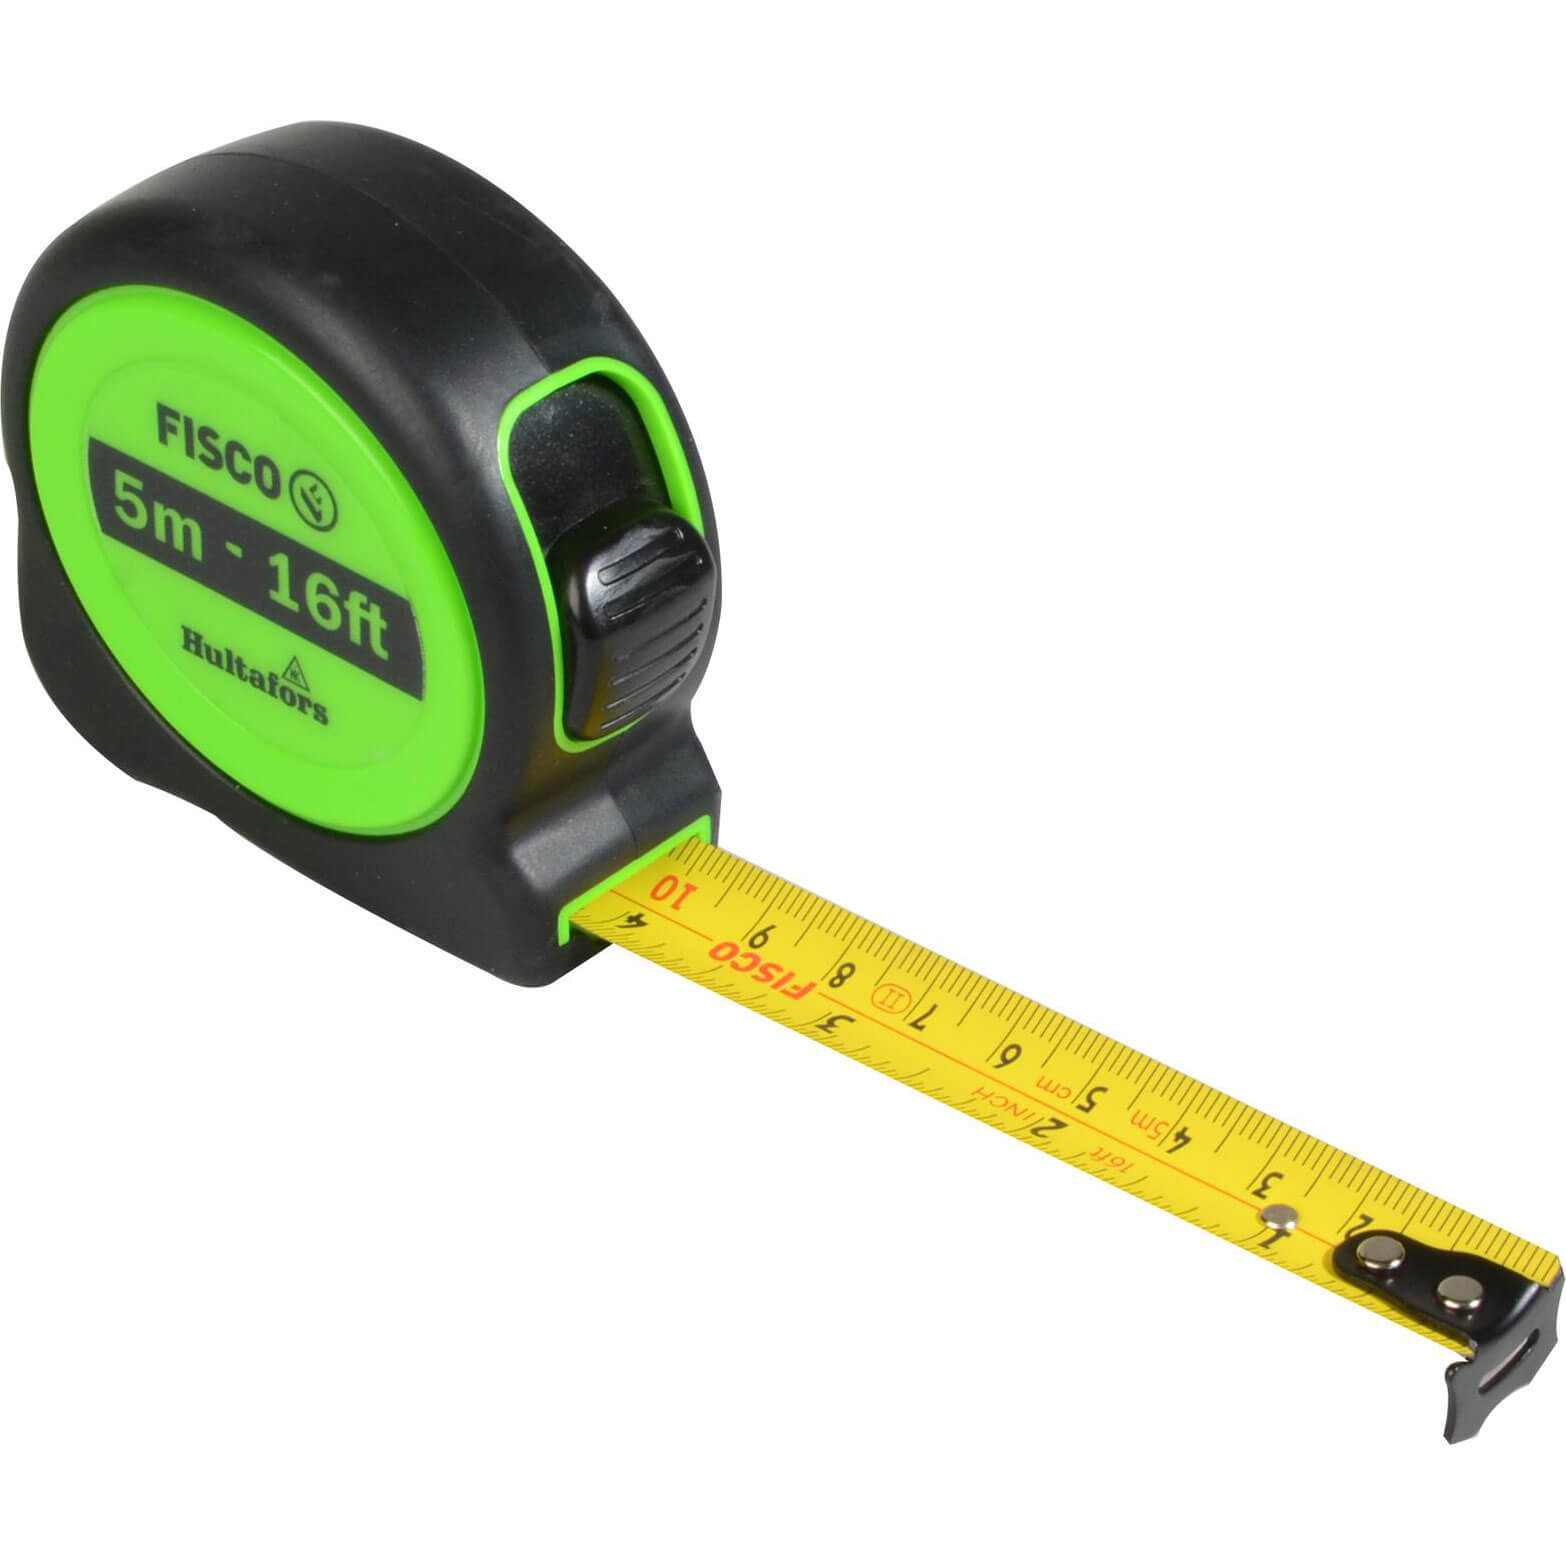 Image of Hultafors A1-Plus Hi-Vis Tape Measure Imperial & Metric 16ft / 5m 19mm